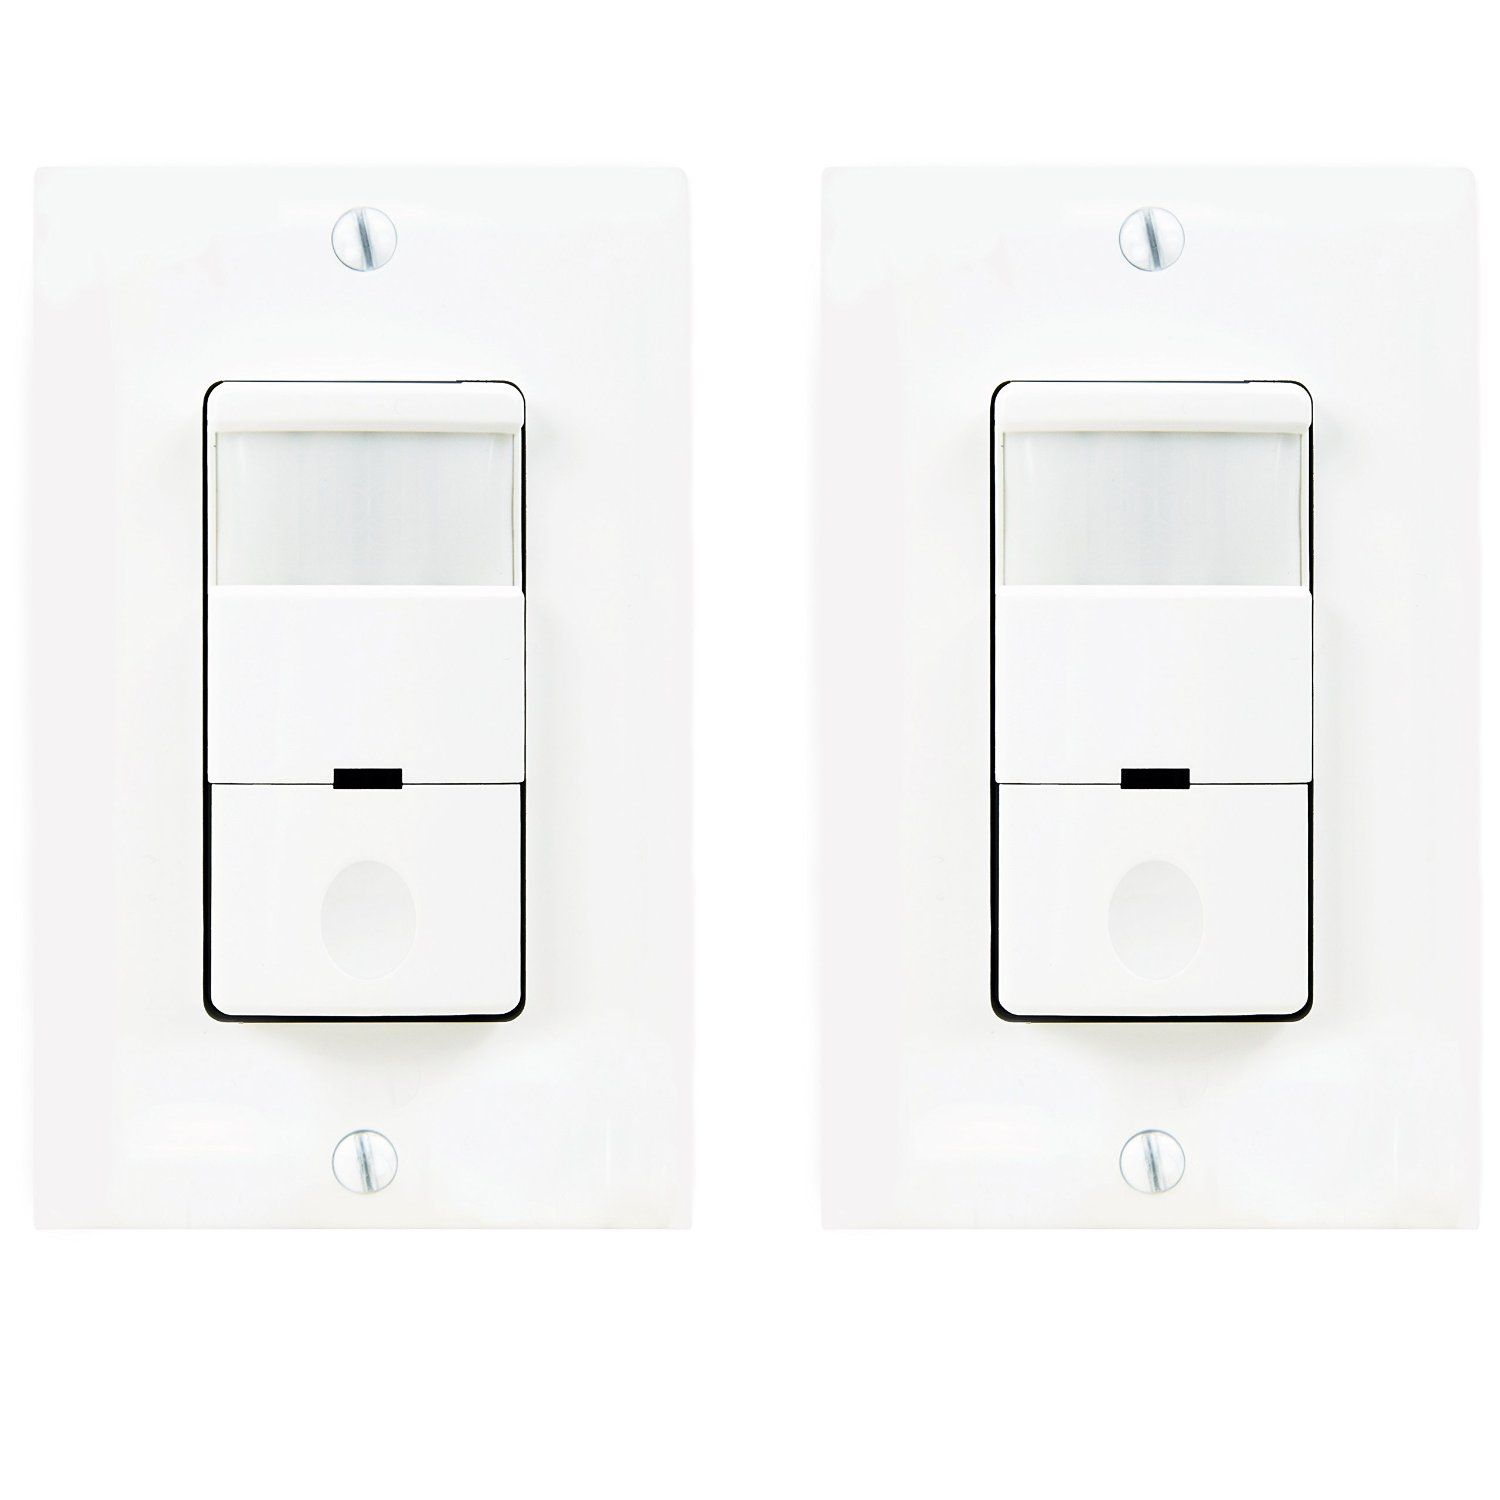 Topgreener Tdos5 Occupancy Sensor Light Switch 500 Watts 1 8 Hp Single Pole Free Wall Plate Neutral Required White Plates On Wall Light Sensor Light Switch